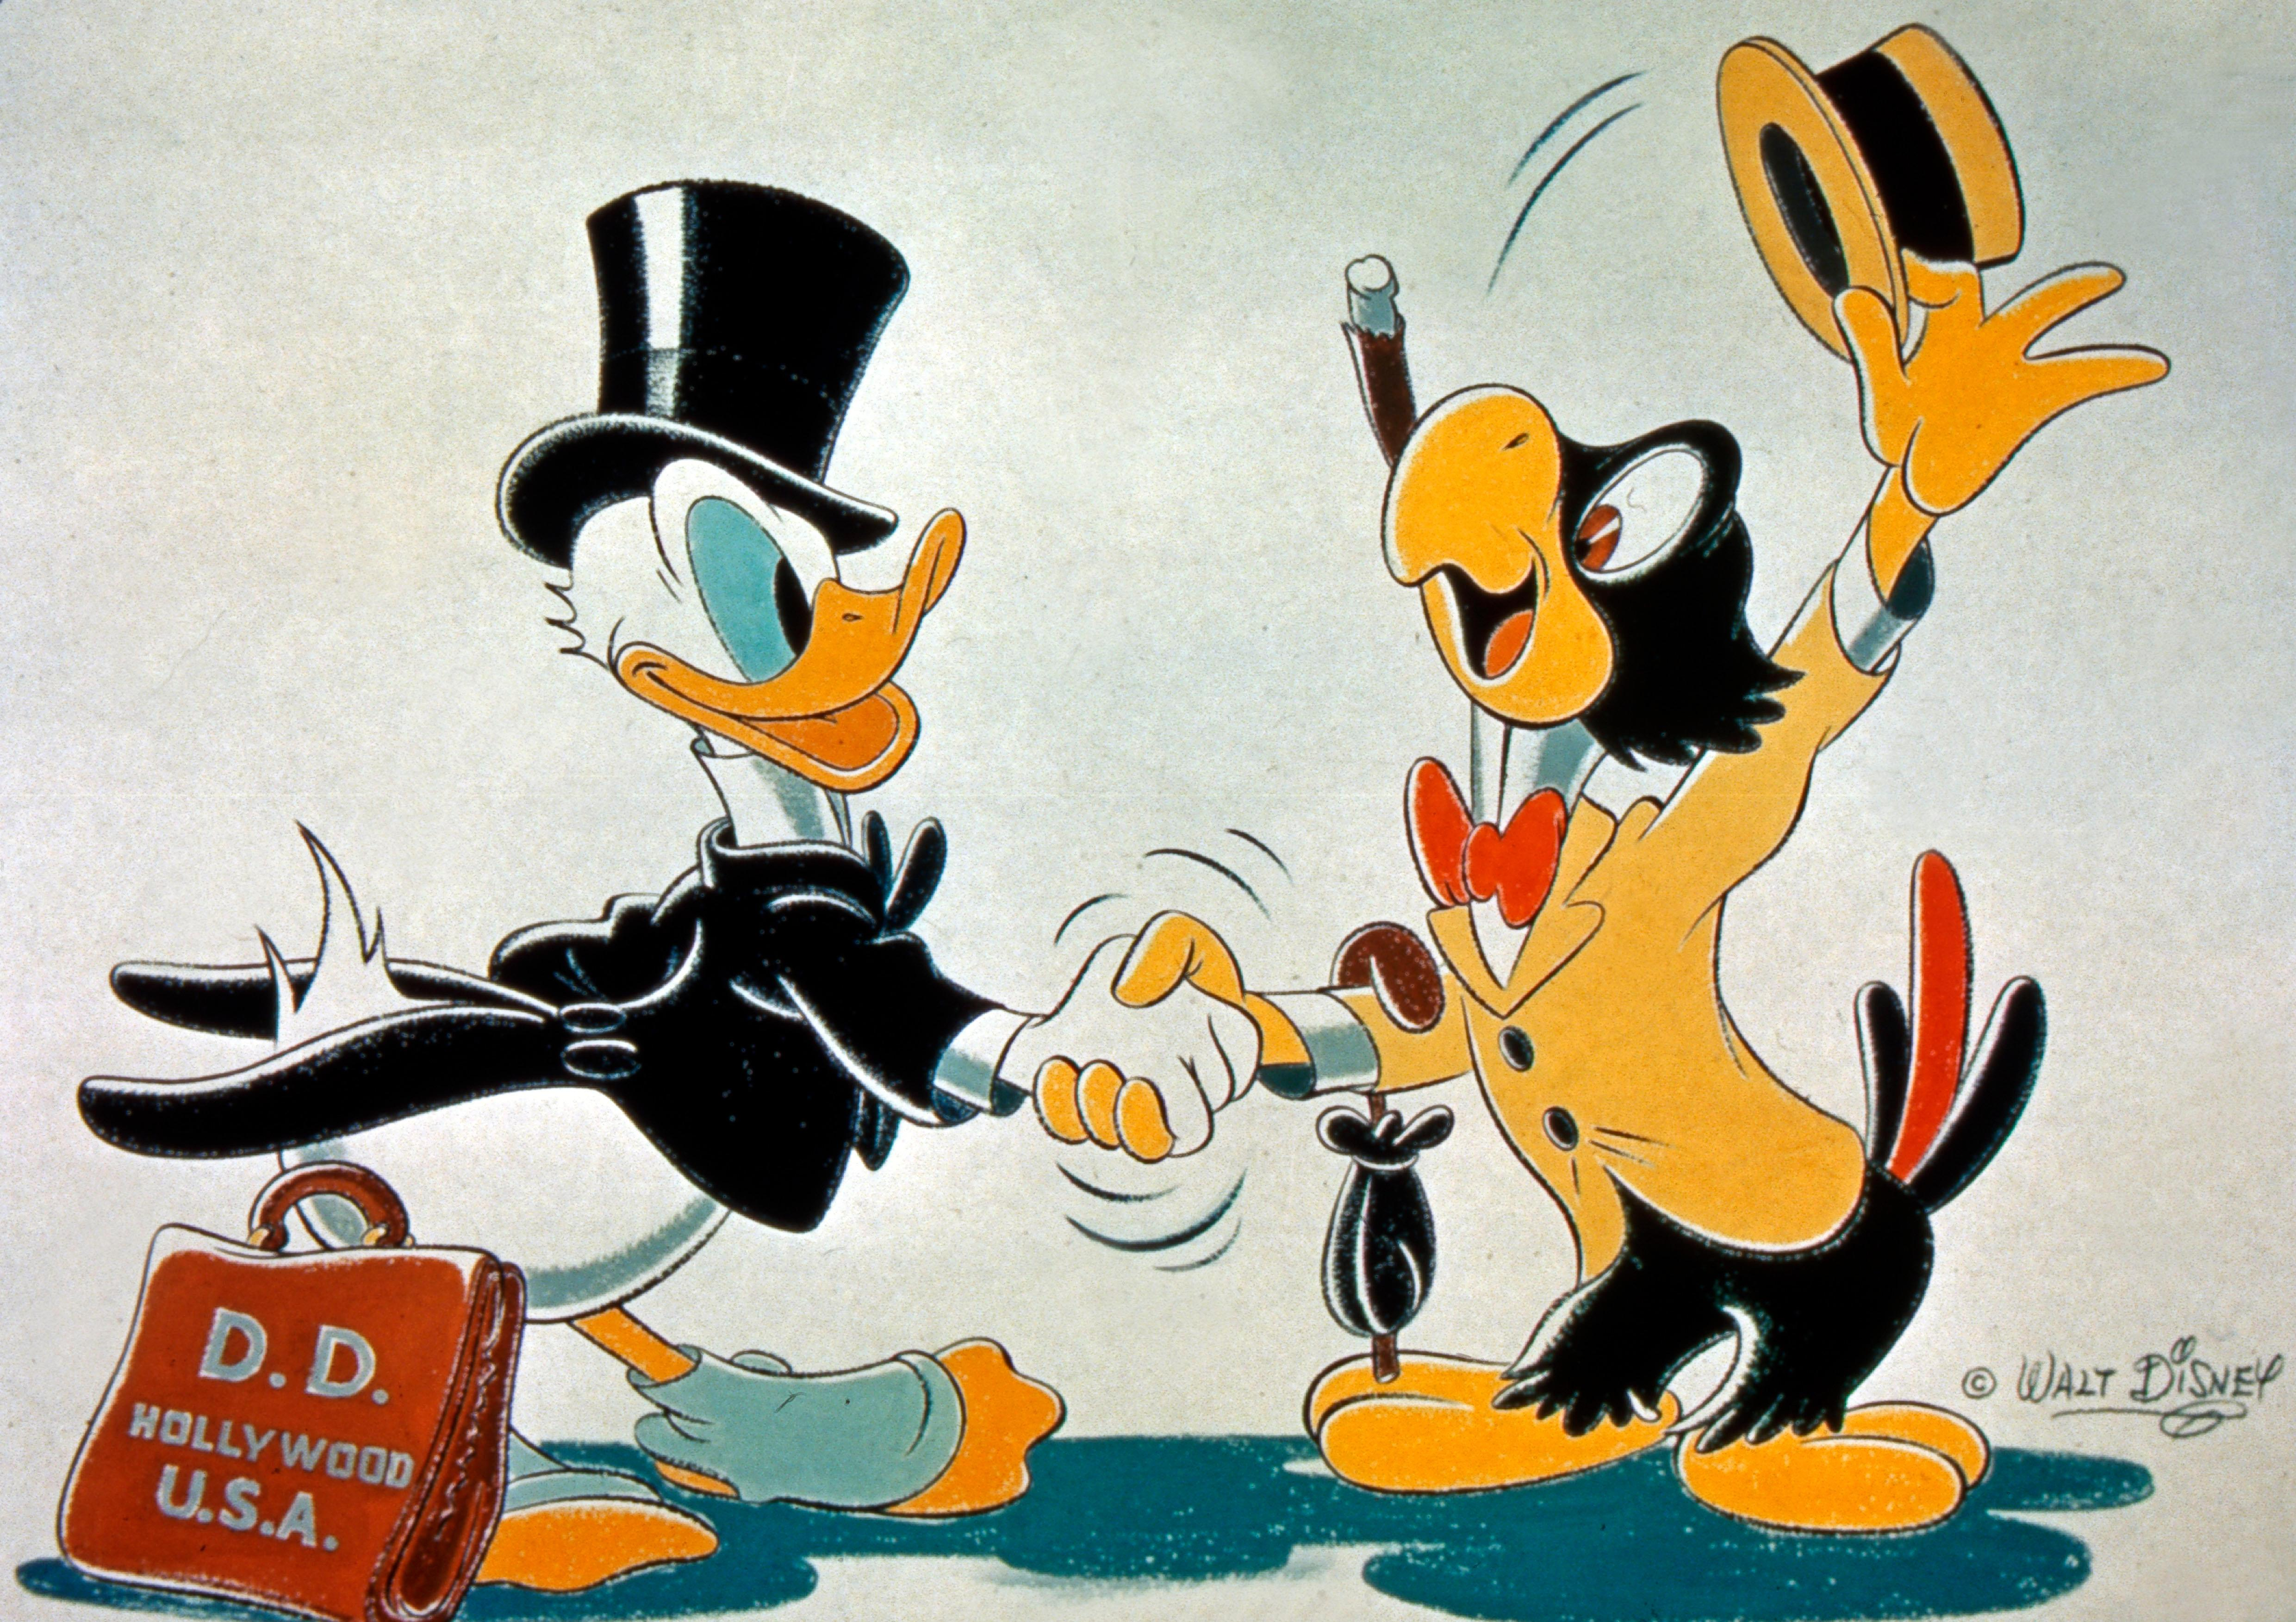 How we roasted Donald Duck, Disney's agent of imperialism